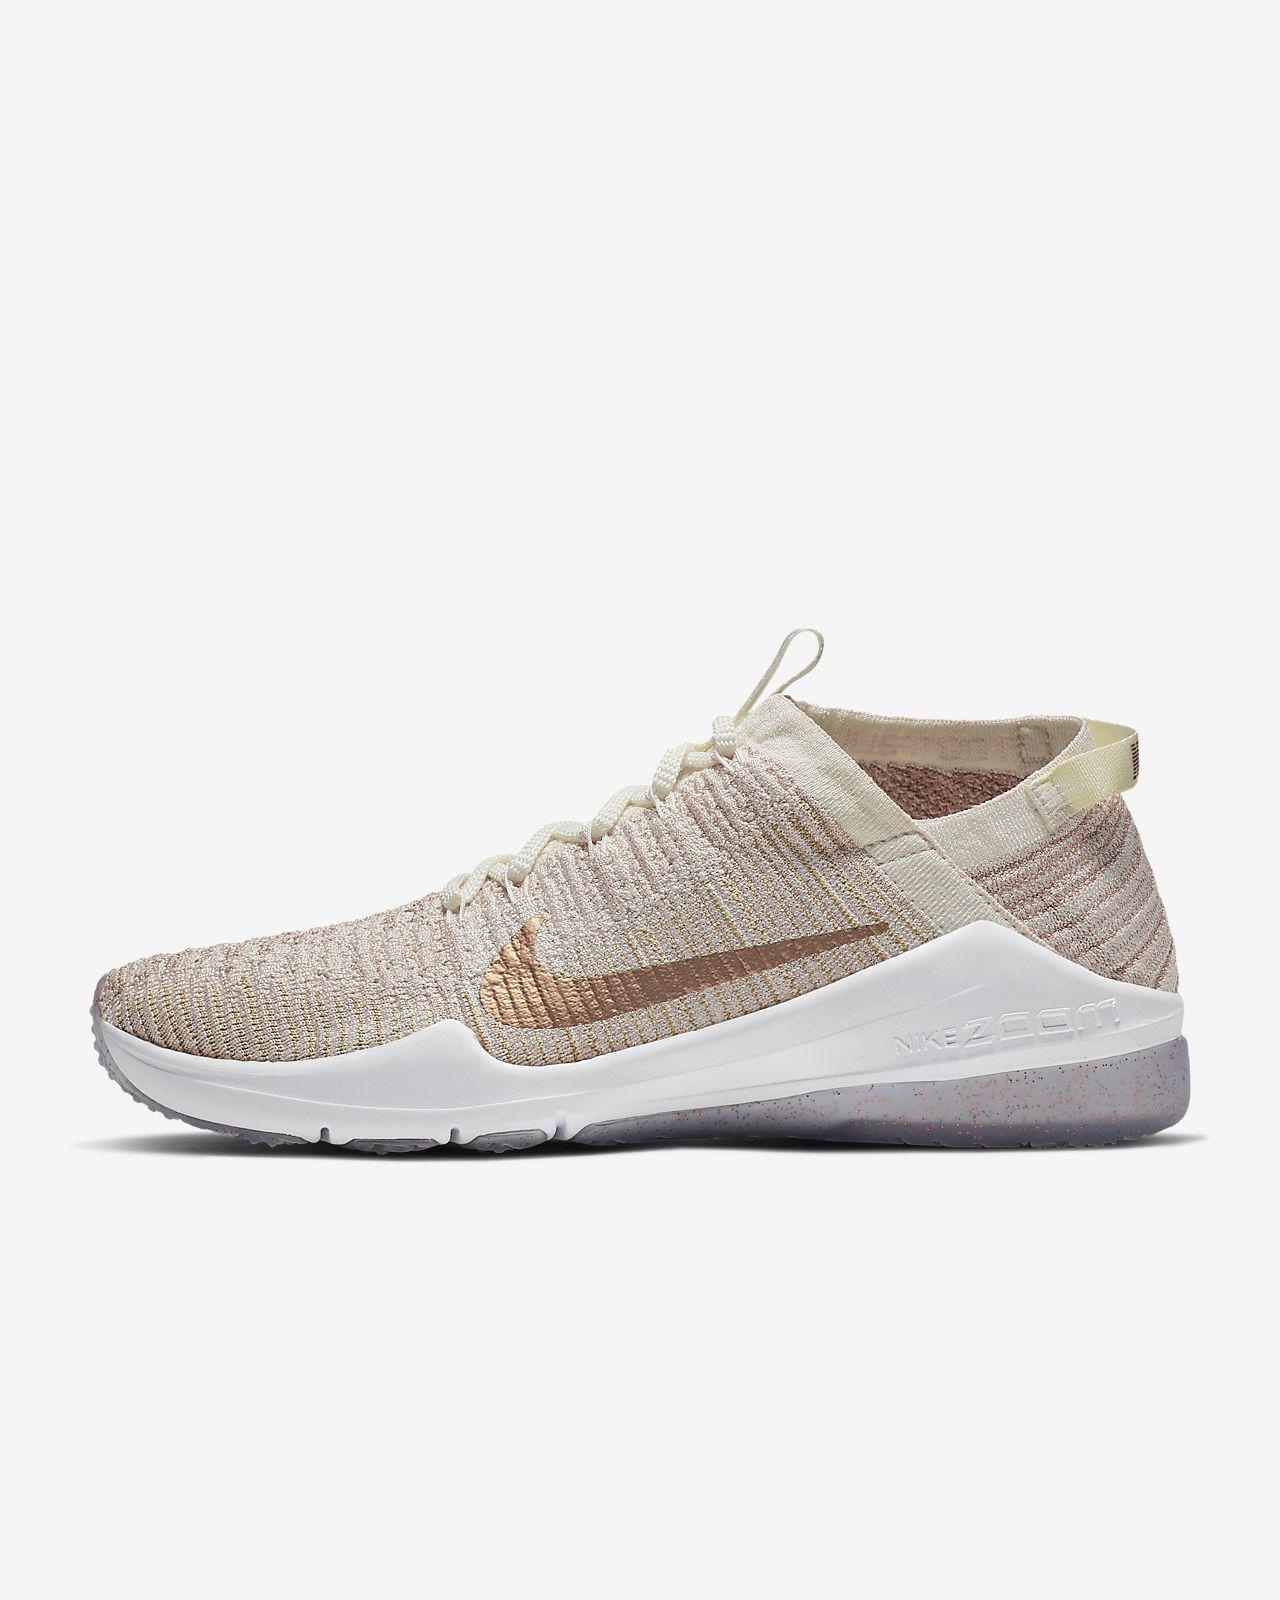 bce287a4b5e87 Nike Air Zoom Fearless Flyknit 2 Metallic Women s Training Shoe ...